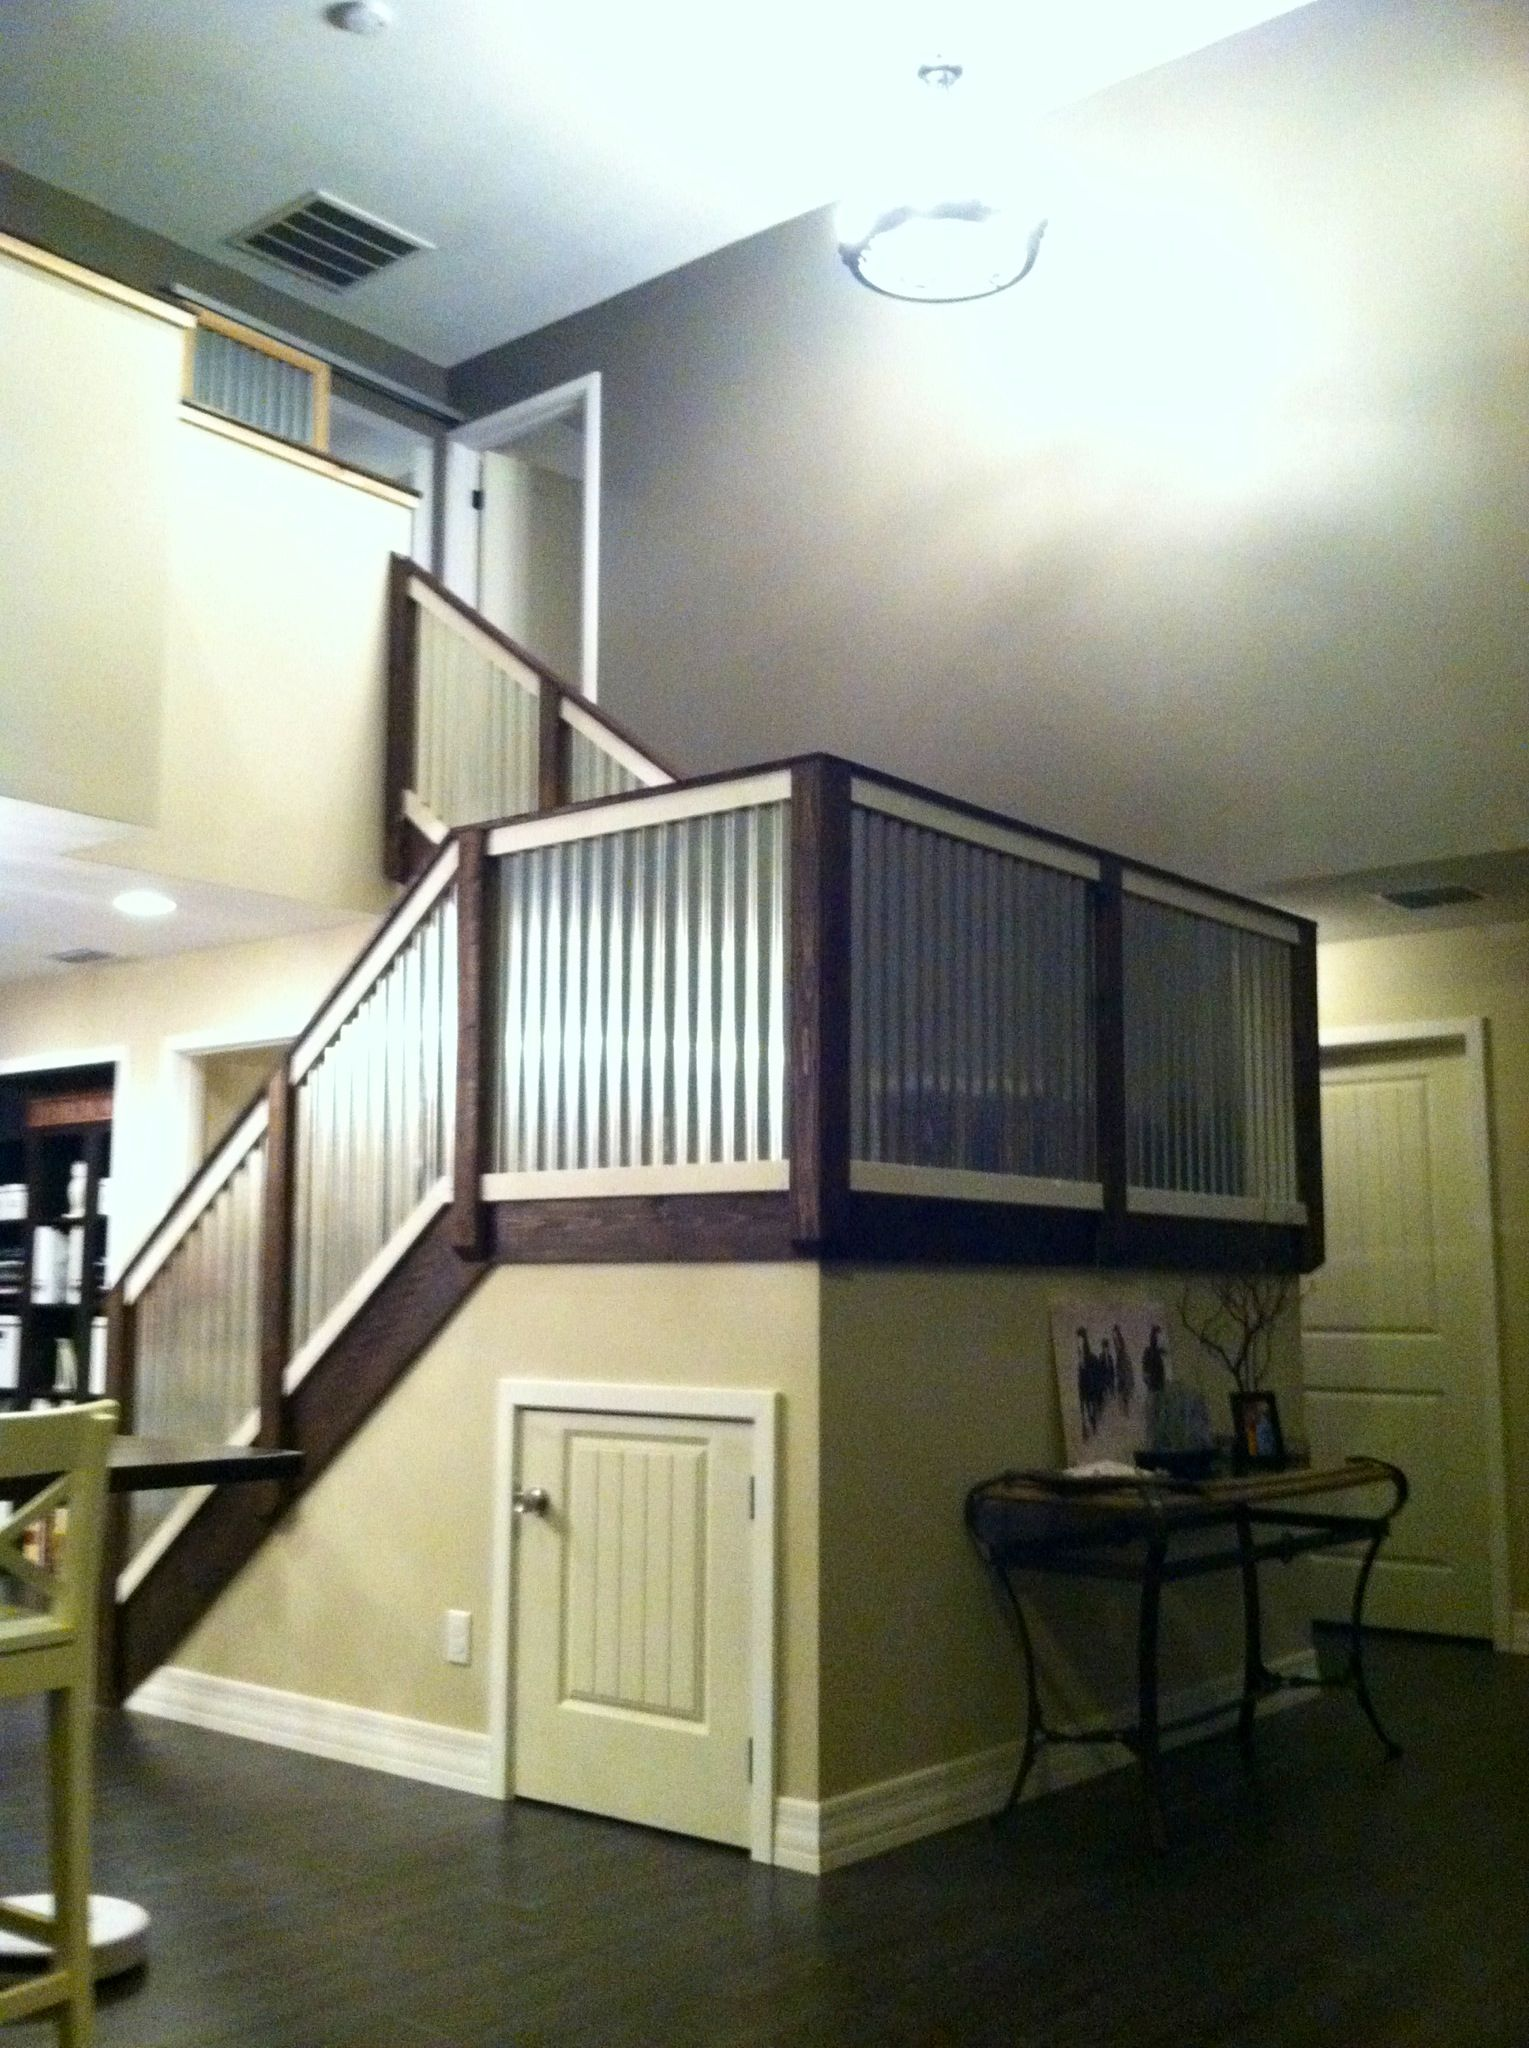 Our Corrugated Metal Stair Railing Metal Stair Railing Metal Stairs Loft Railing